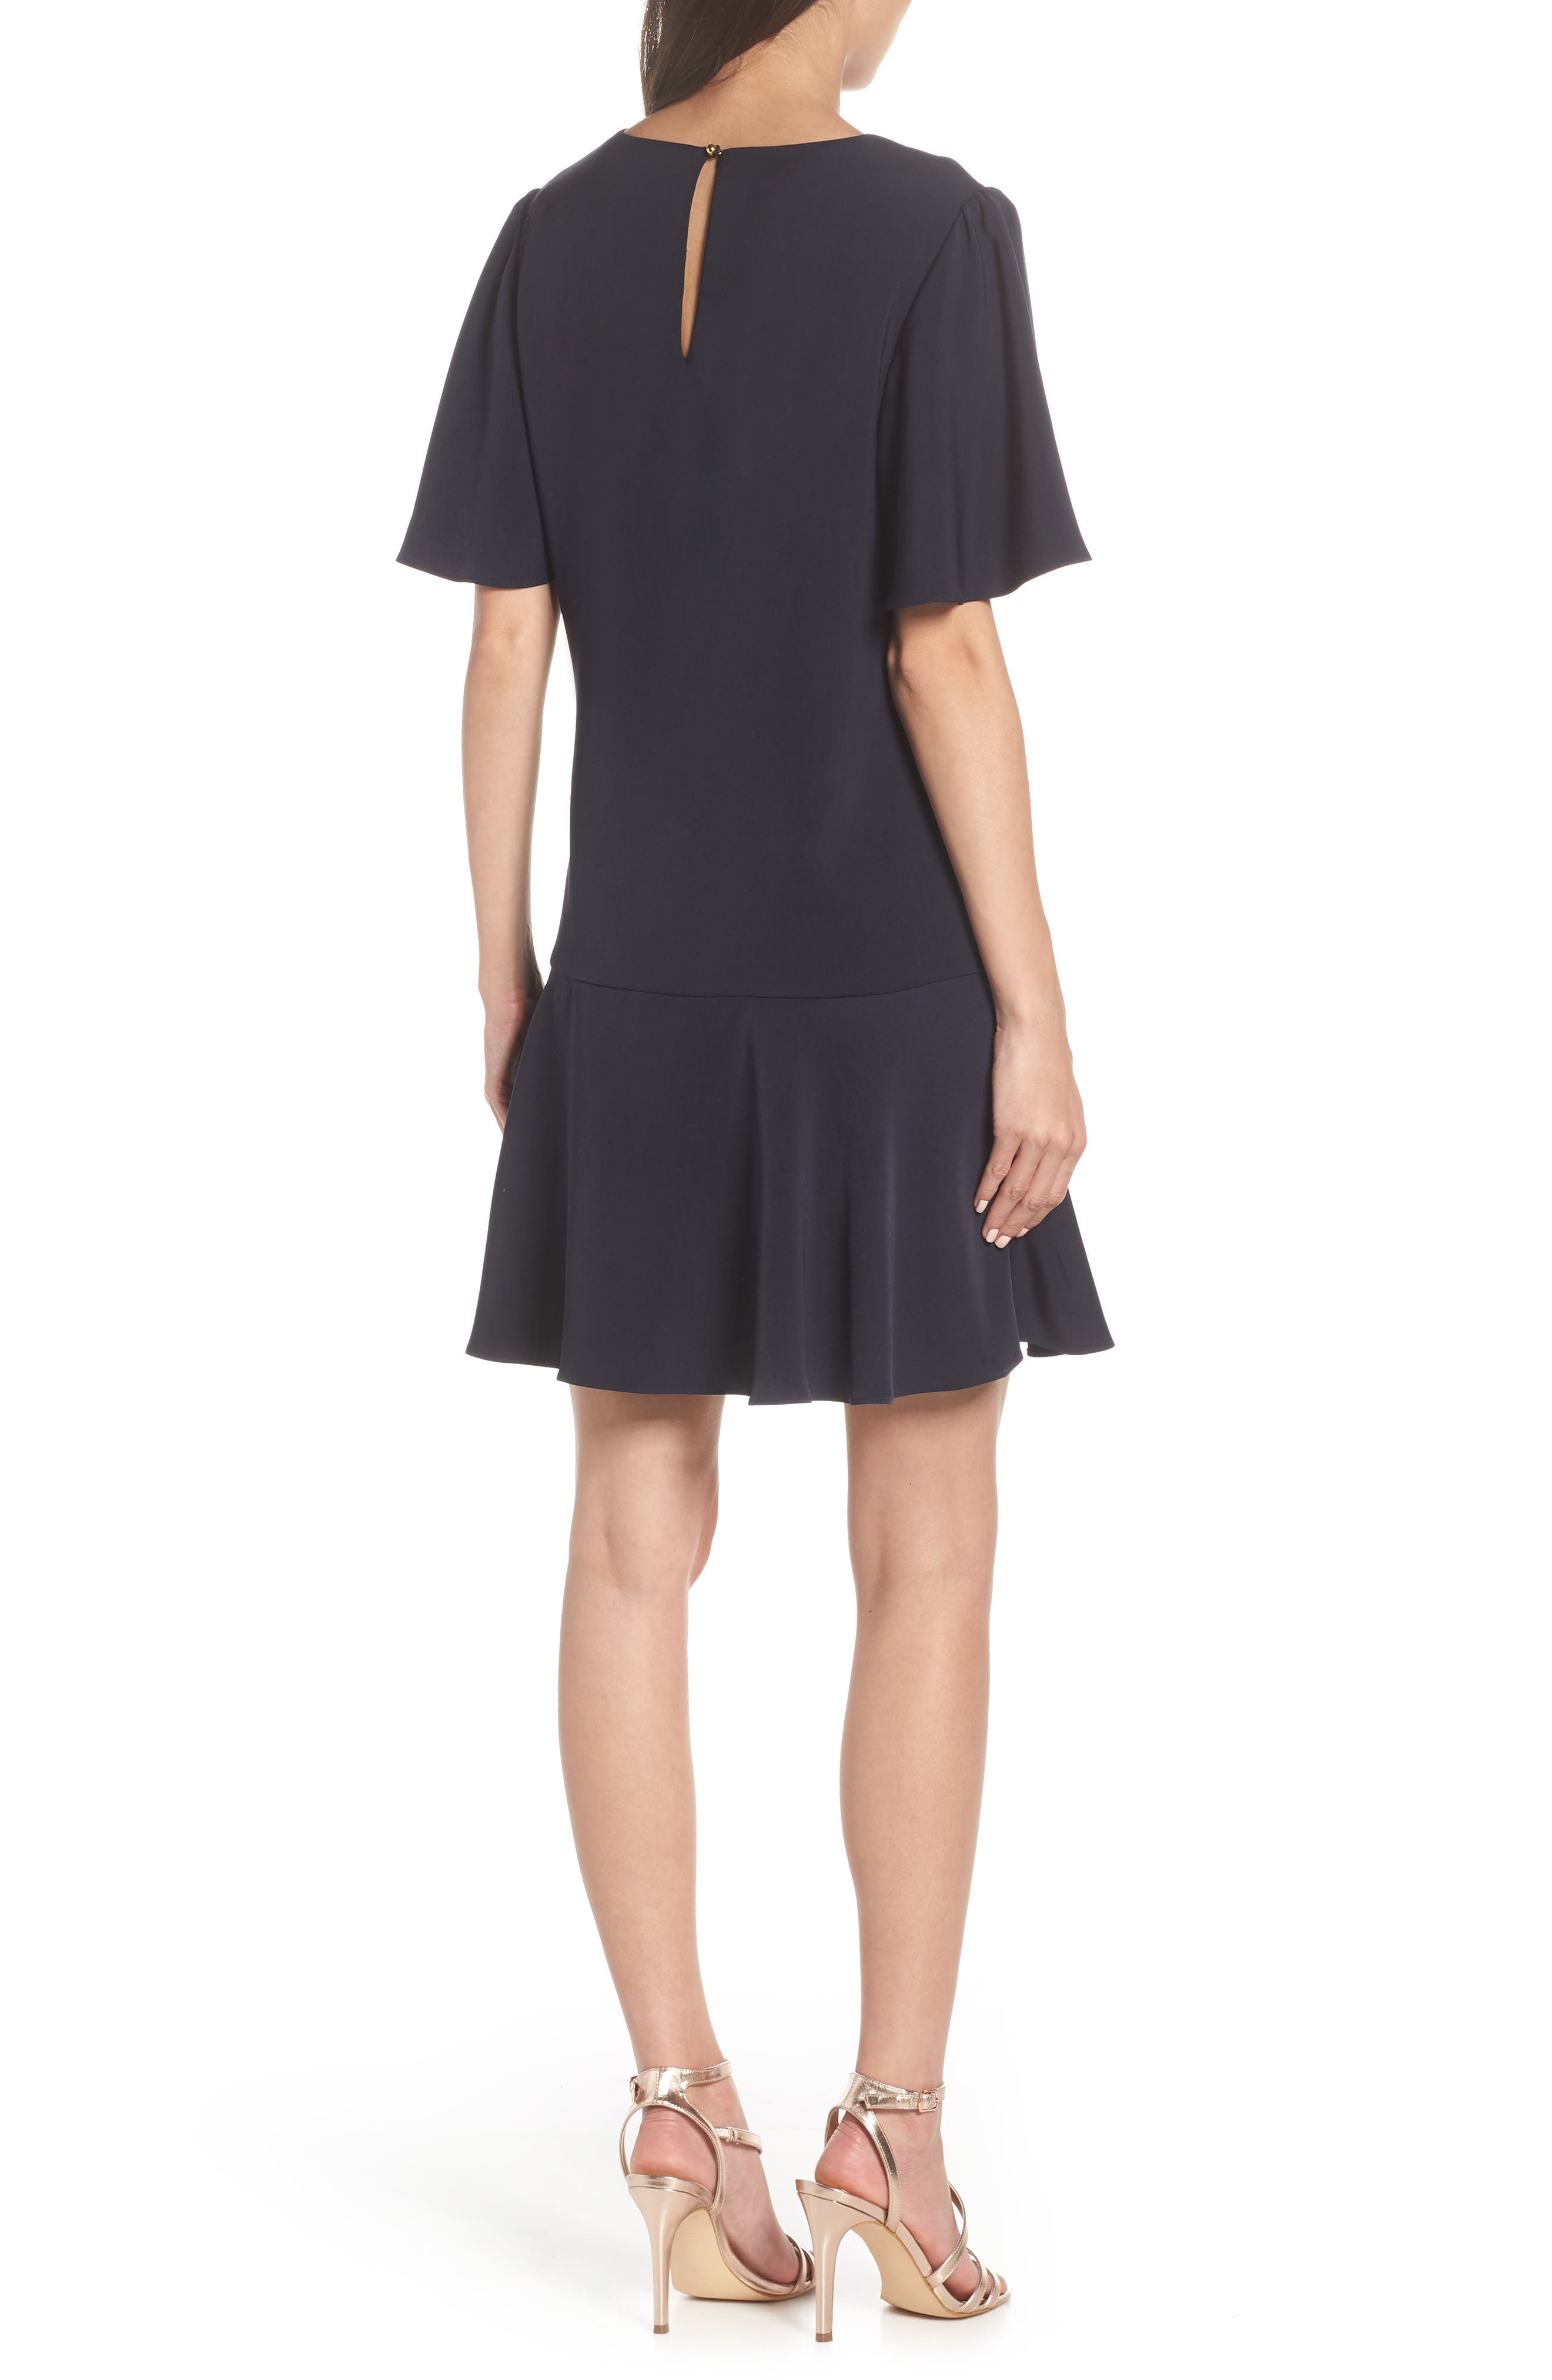 CHARLES HENRY, Flutter Sleeve Shift Dress, Alternate thumbnail 2, color, NAVY